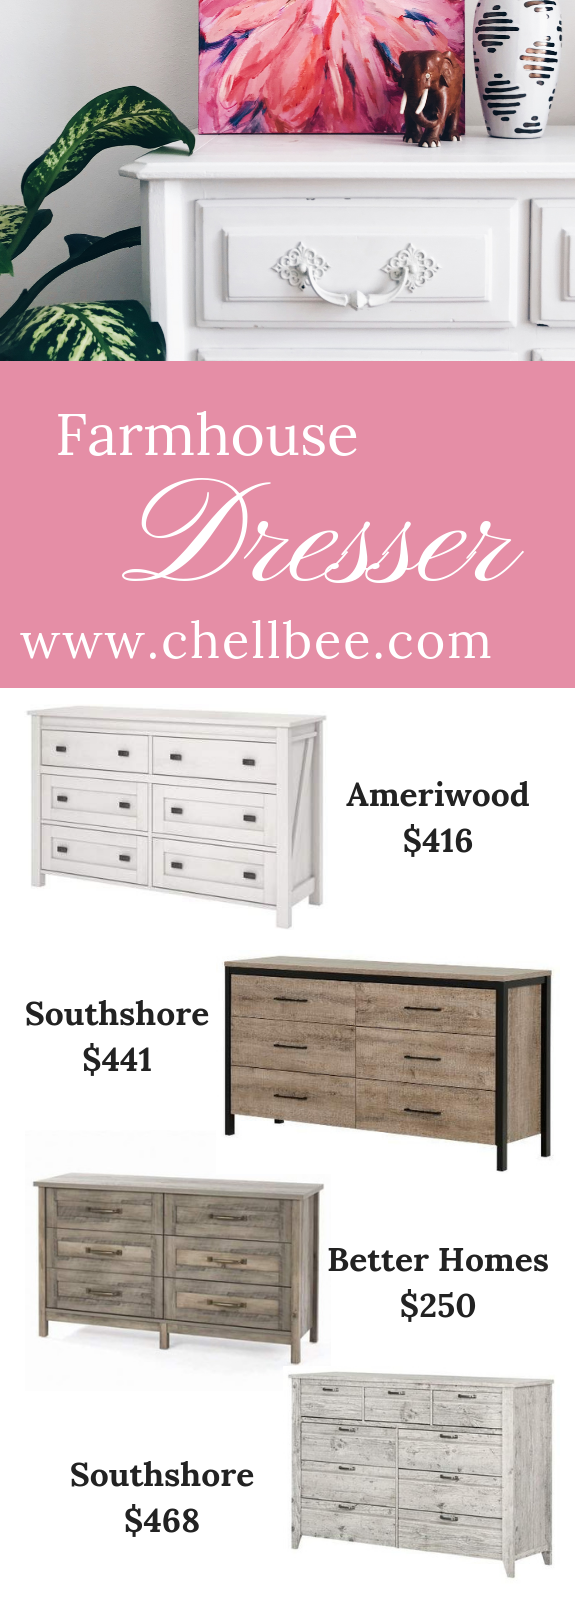 Farmhouse Bedroom | Update your bedroom decor with one of these beautiful dresser. These bedroom dresser are perfect if you love farmhouse style. #Farmhousedecor #Farmhousestyle